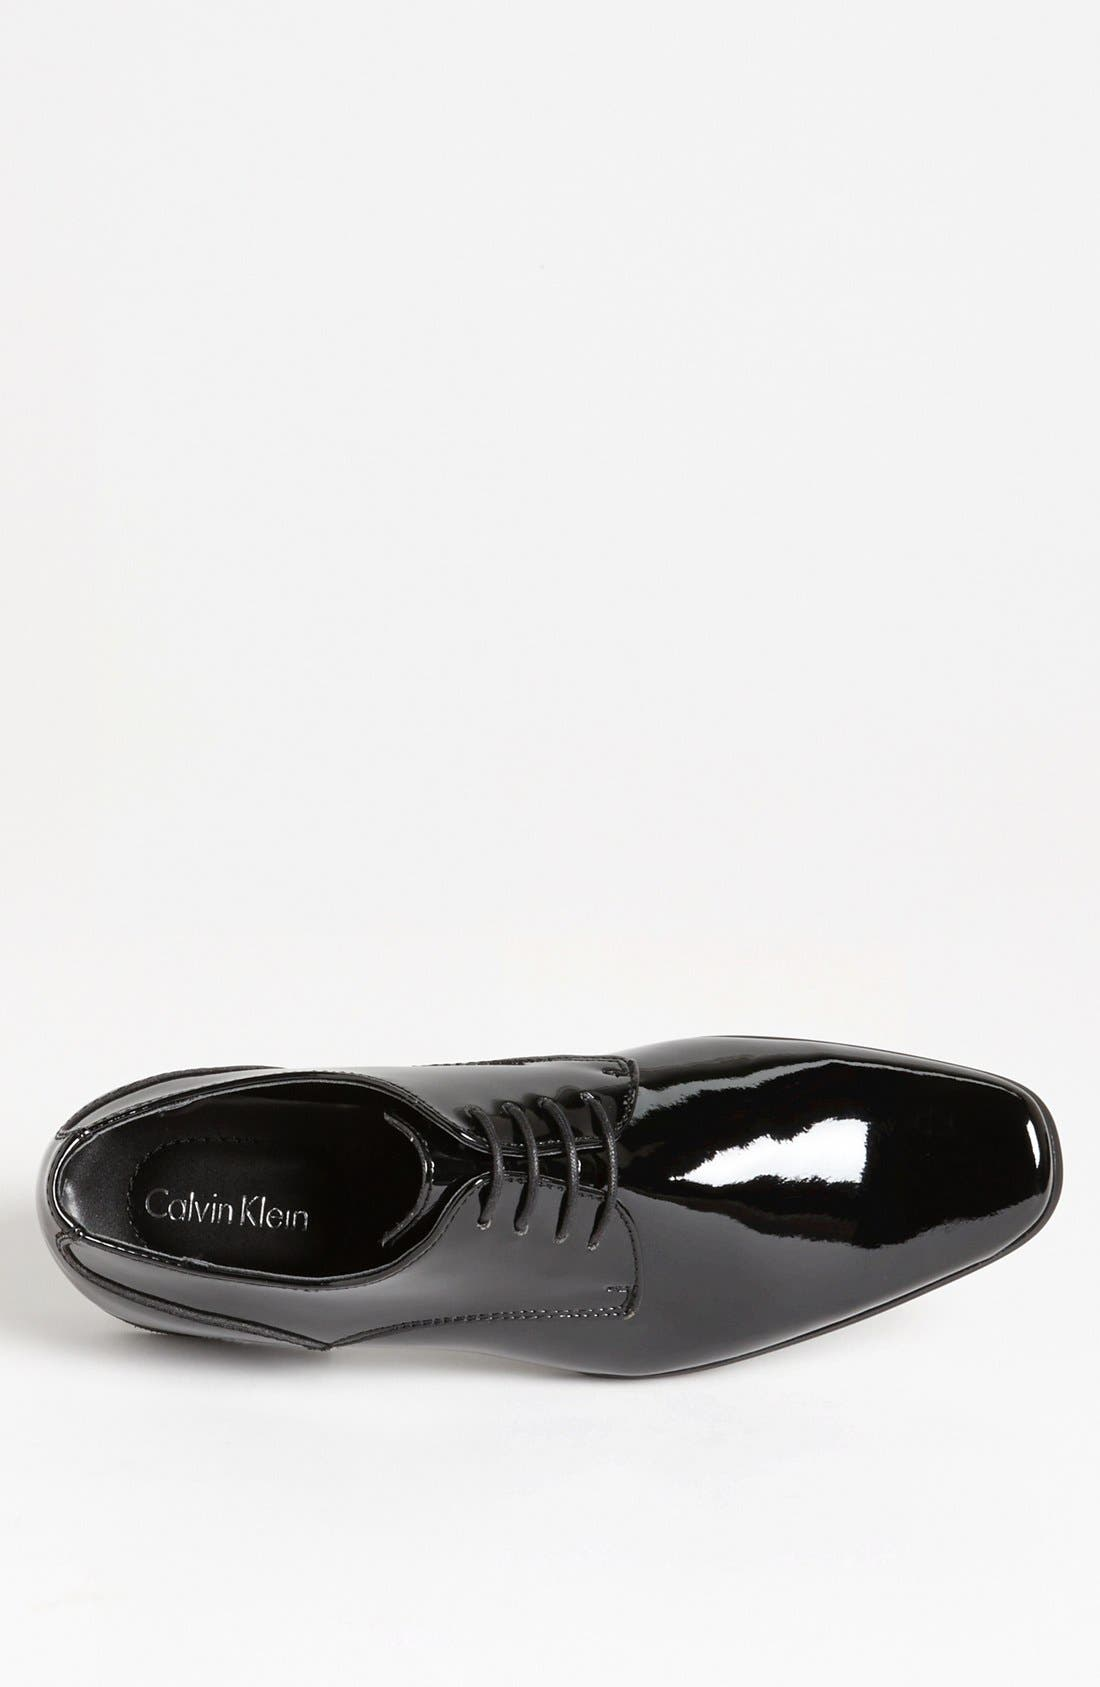 CALVIN KLEIN, 'Brodie' Plain Toe Derby, Alternate thumbnail 3, color, BLACK PATENT